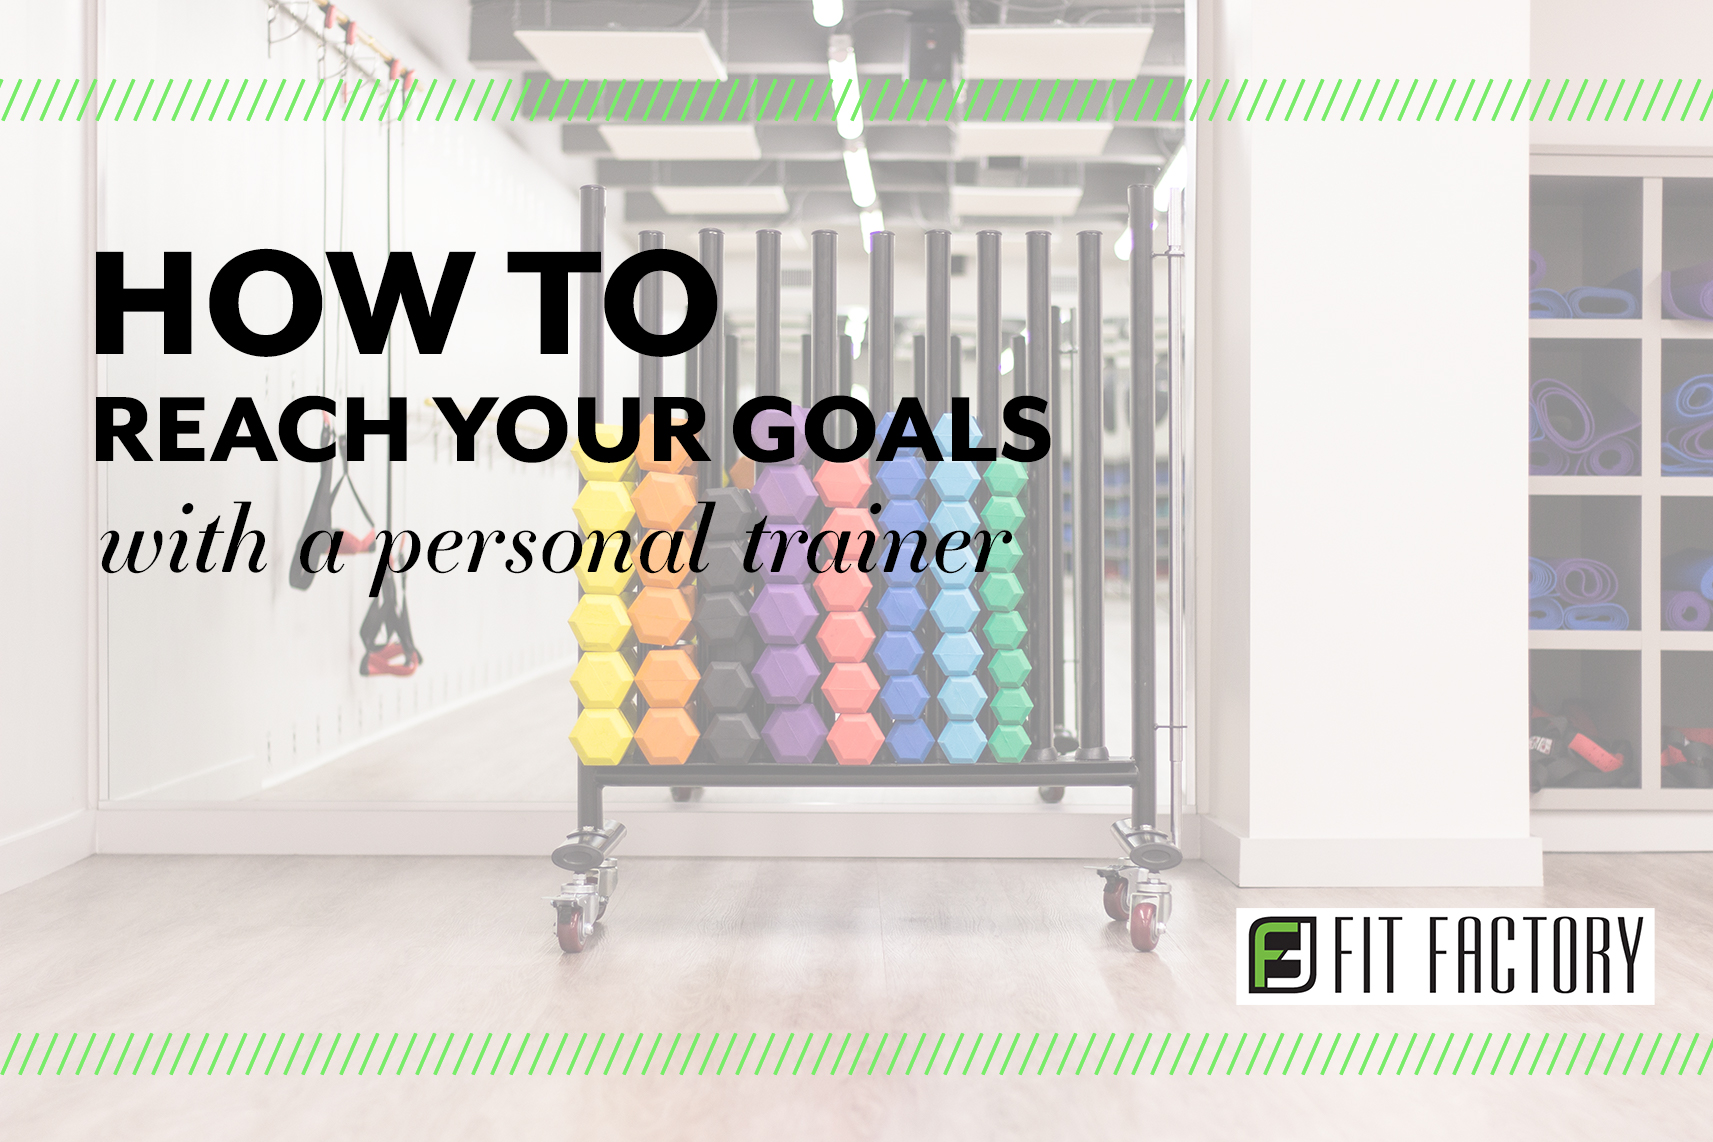 How To Reach Your Goals with a Personal Trainer